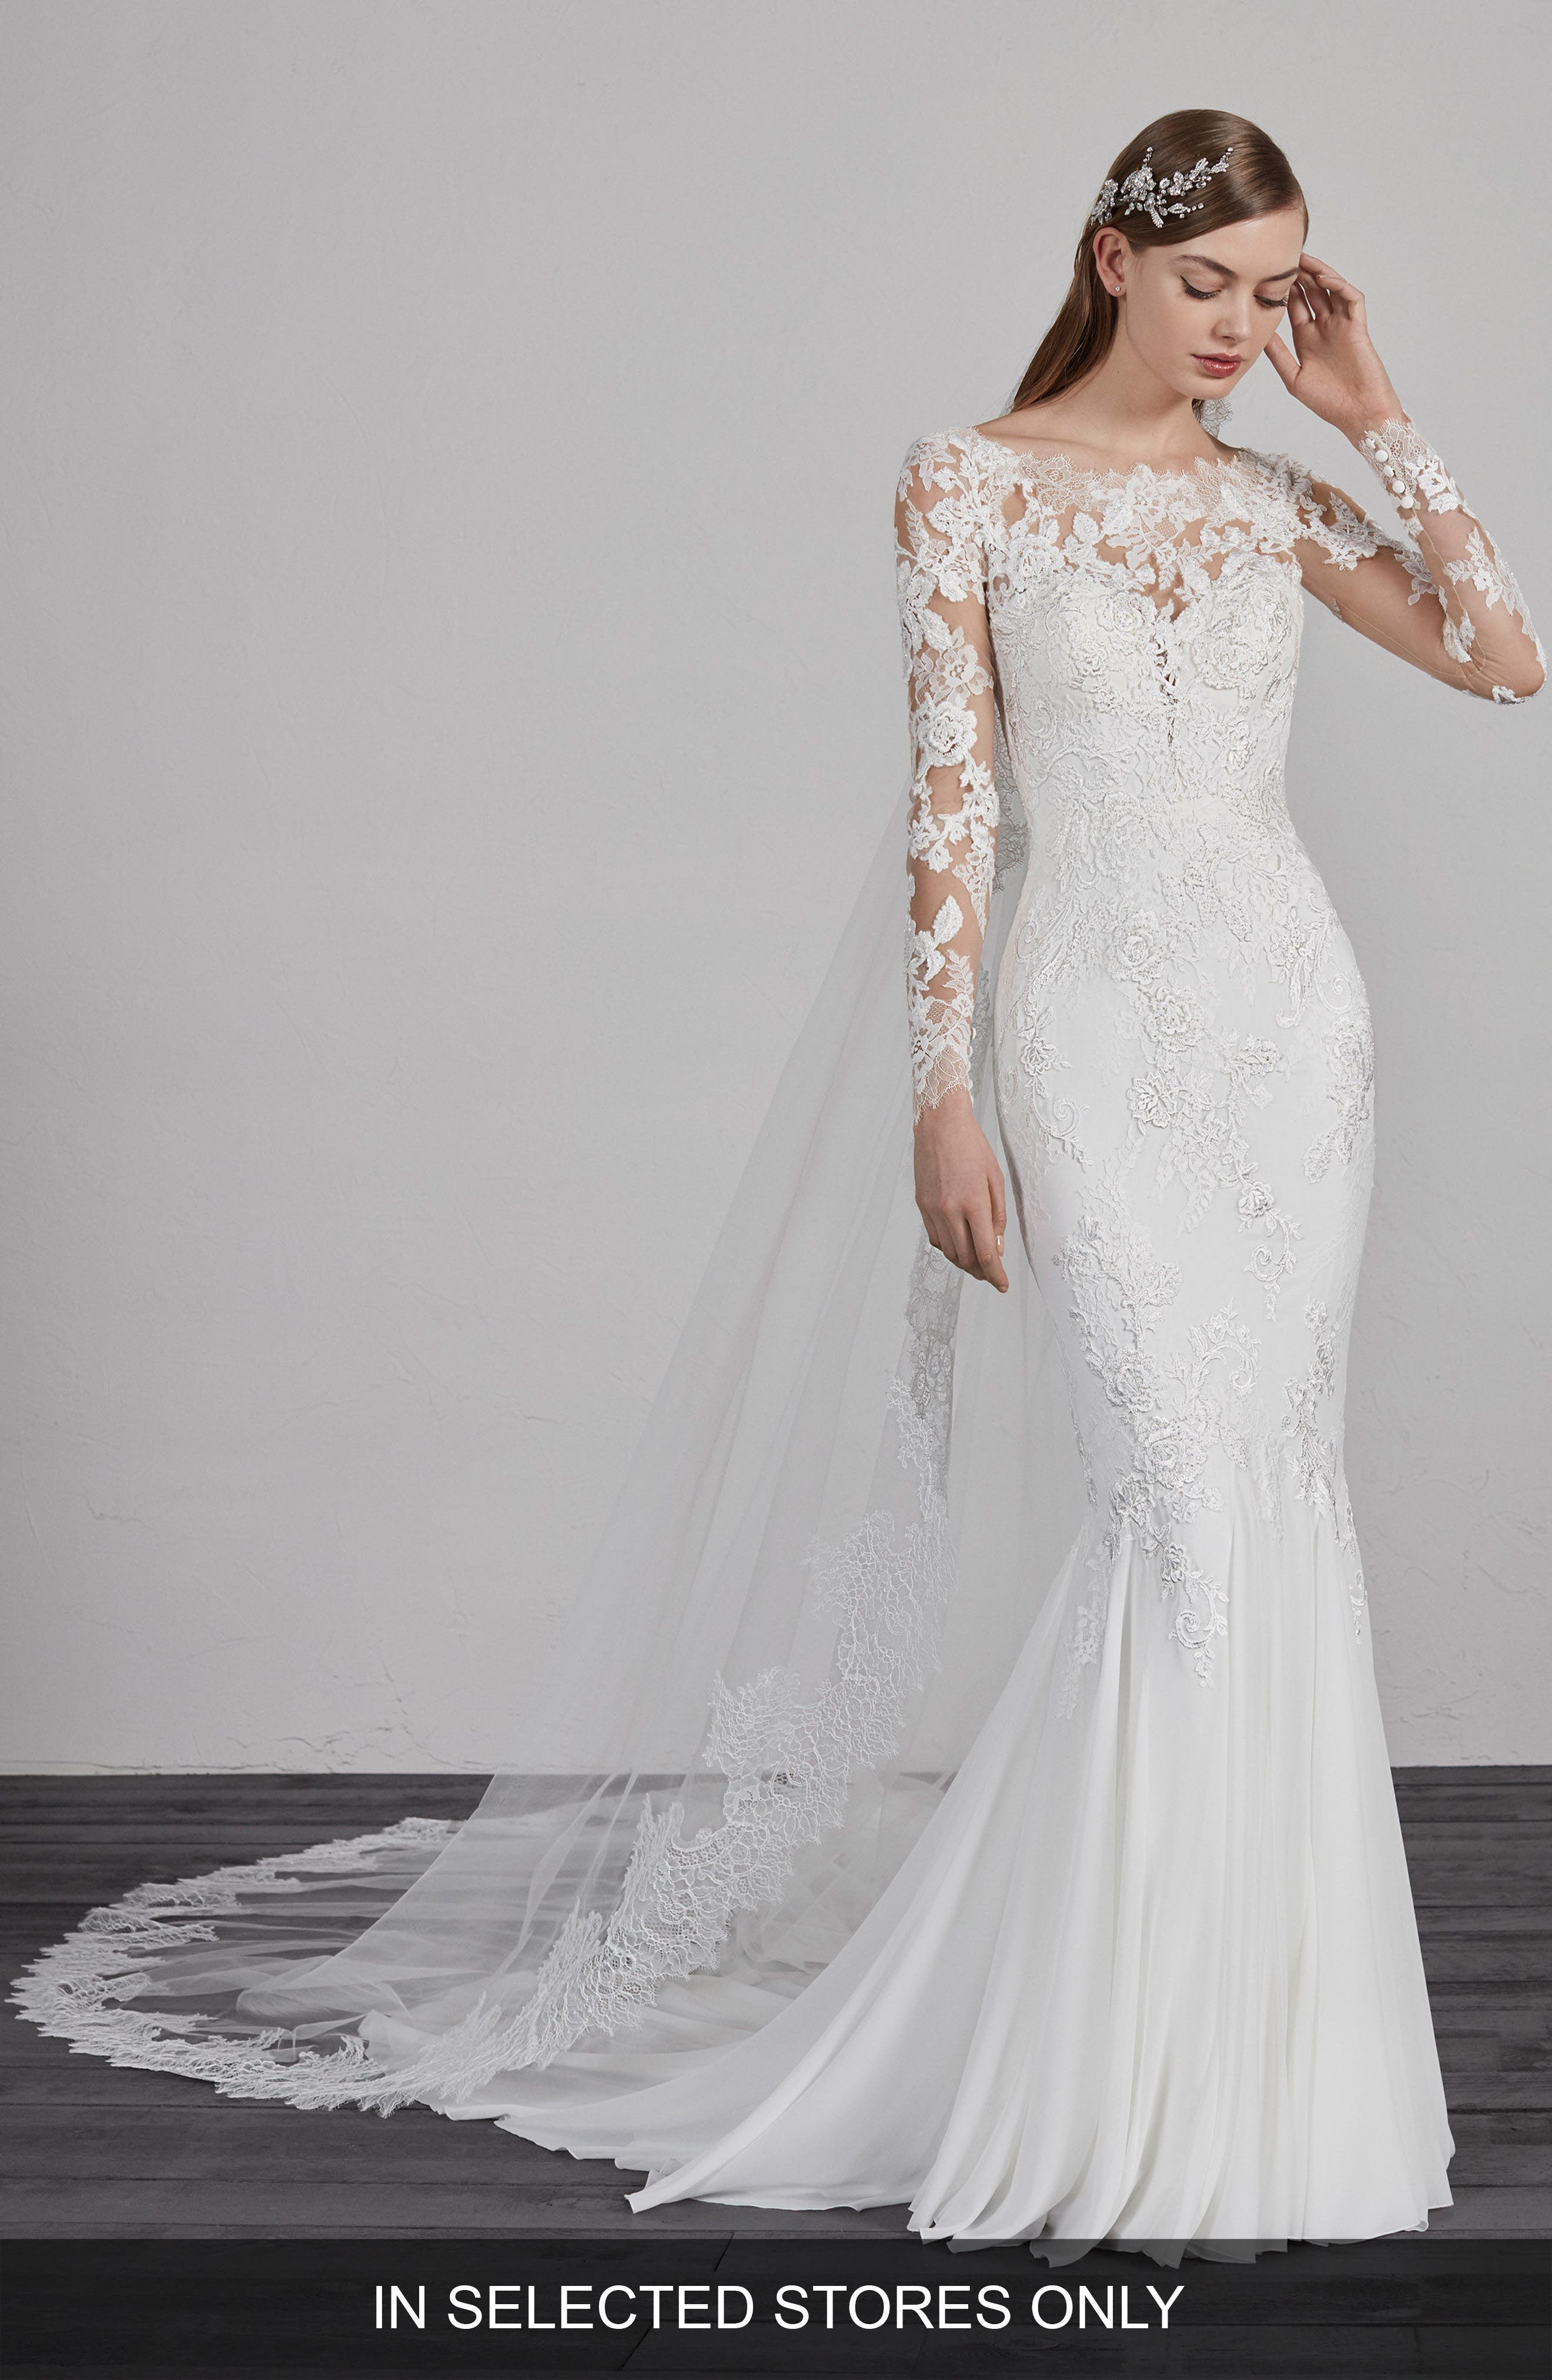 Esperanza Illusion Lace Mermaid Gown,                         Main,                         color, OFF WH/ CRST